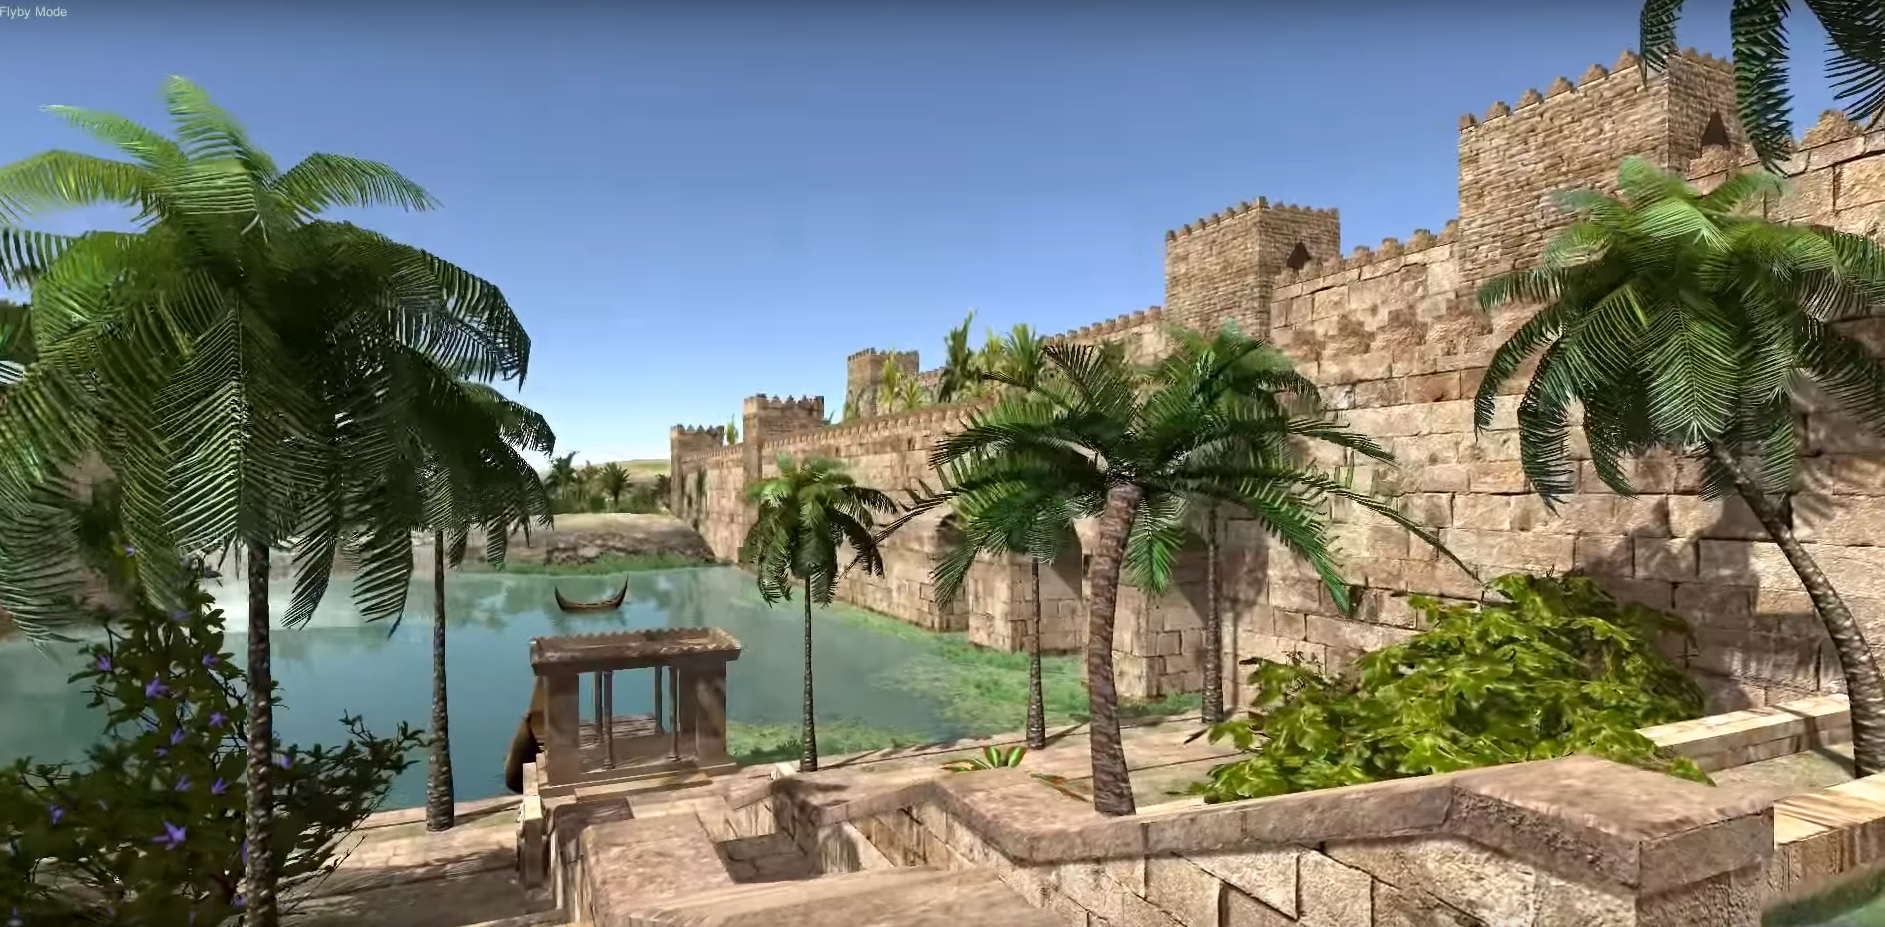 Top 10 Facts About The Hanging Gardens Of Babylon